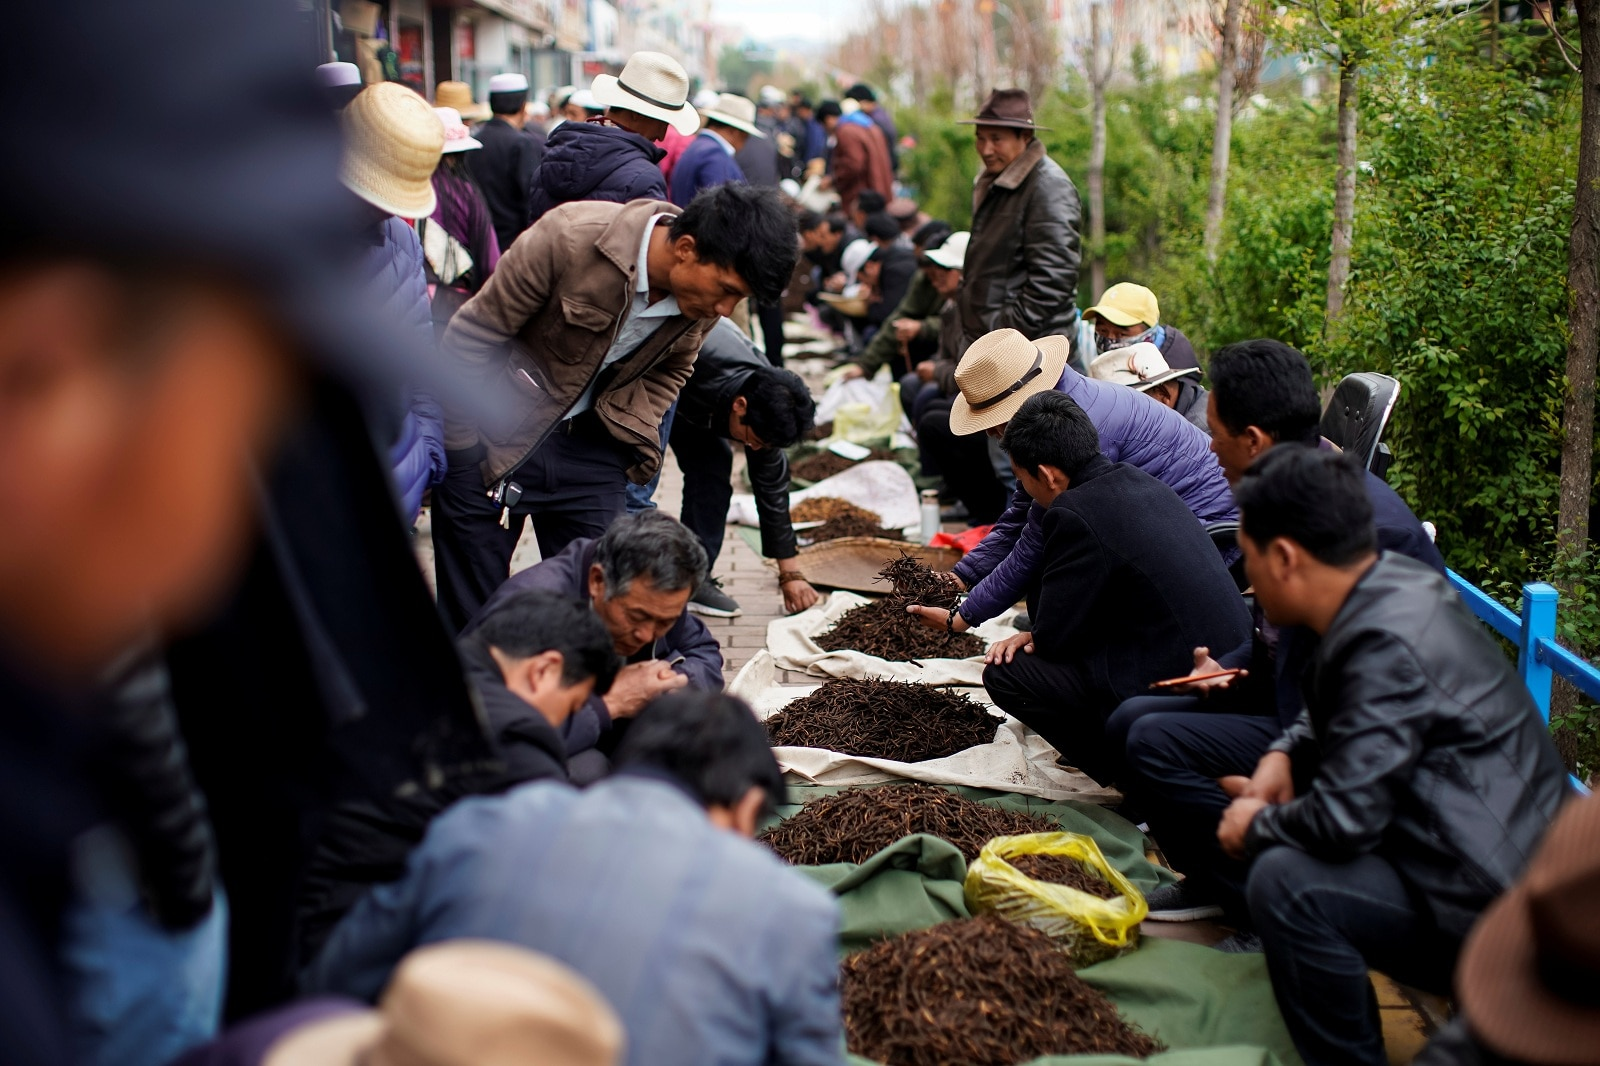 Buyers check the quality of cordyceps, a fungus believed to possess aphrodisiac and medicinal powers, at a cordyceps trade market in Hainan Tibetan Autonomous Prefecture, in China's western Qinghai province June 10, 2019. REUTERS/Aly Song